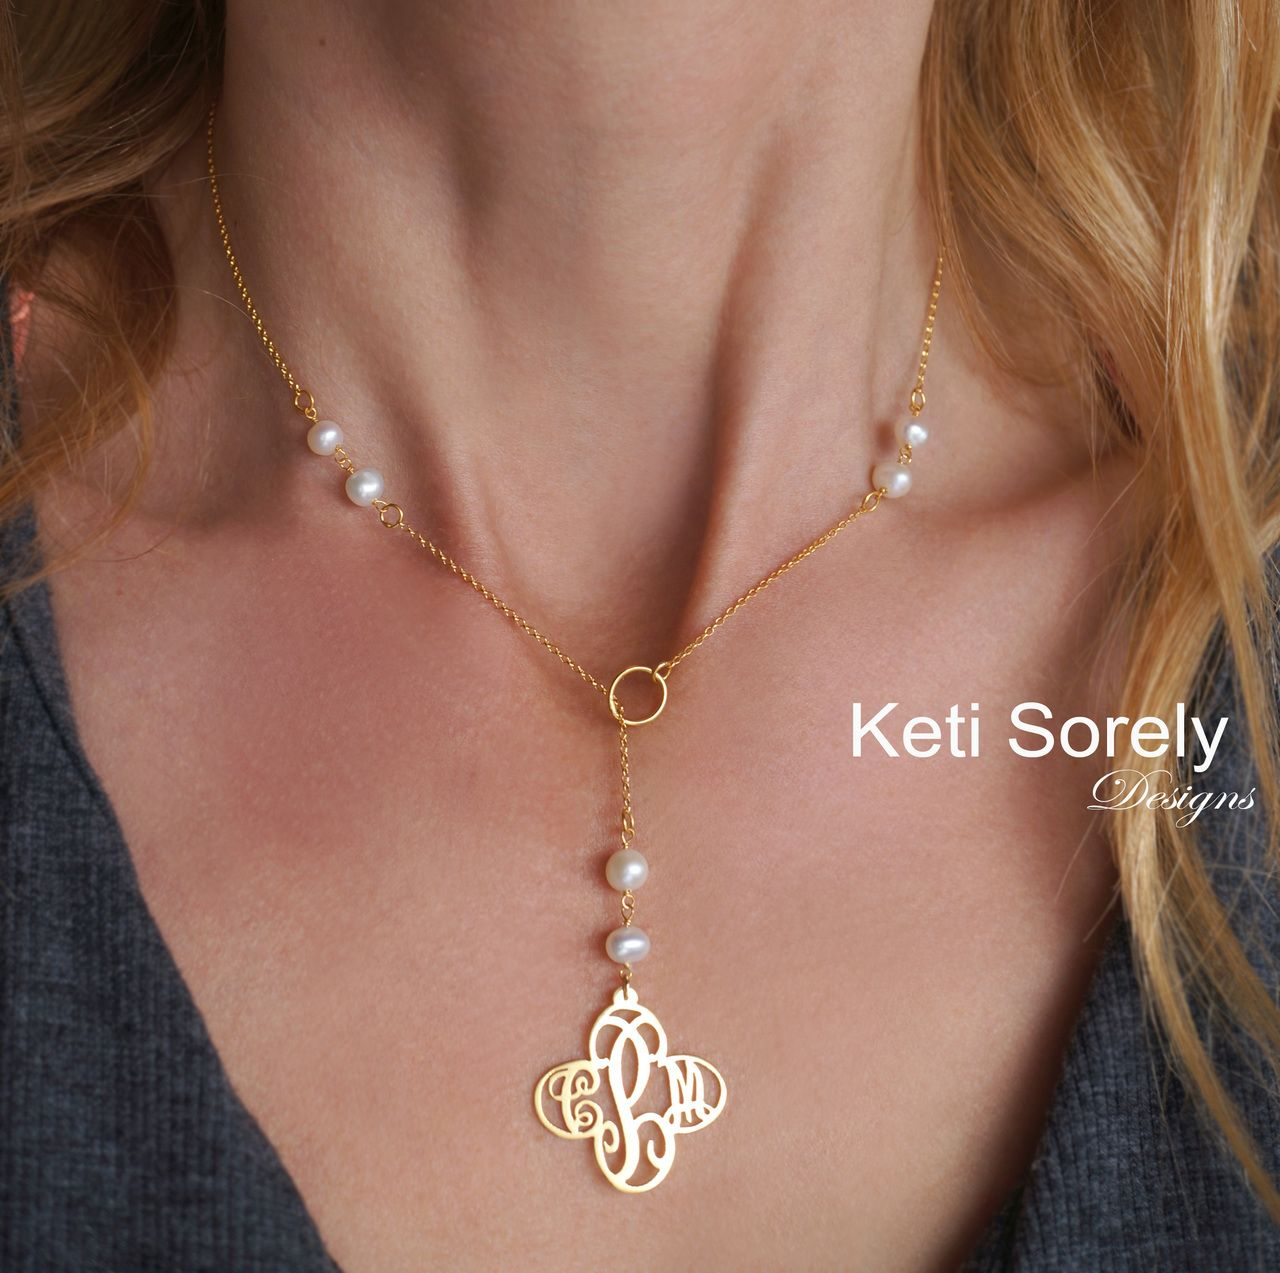 44f05903a3f21 Cross Monogram Necklace with Freshwater Pearls -Lariat Style ...